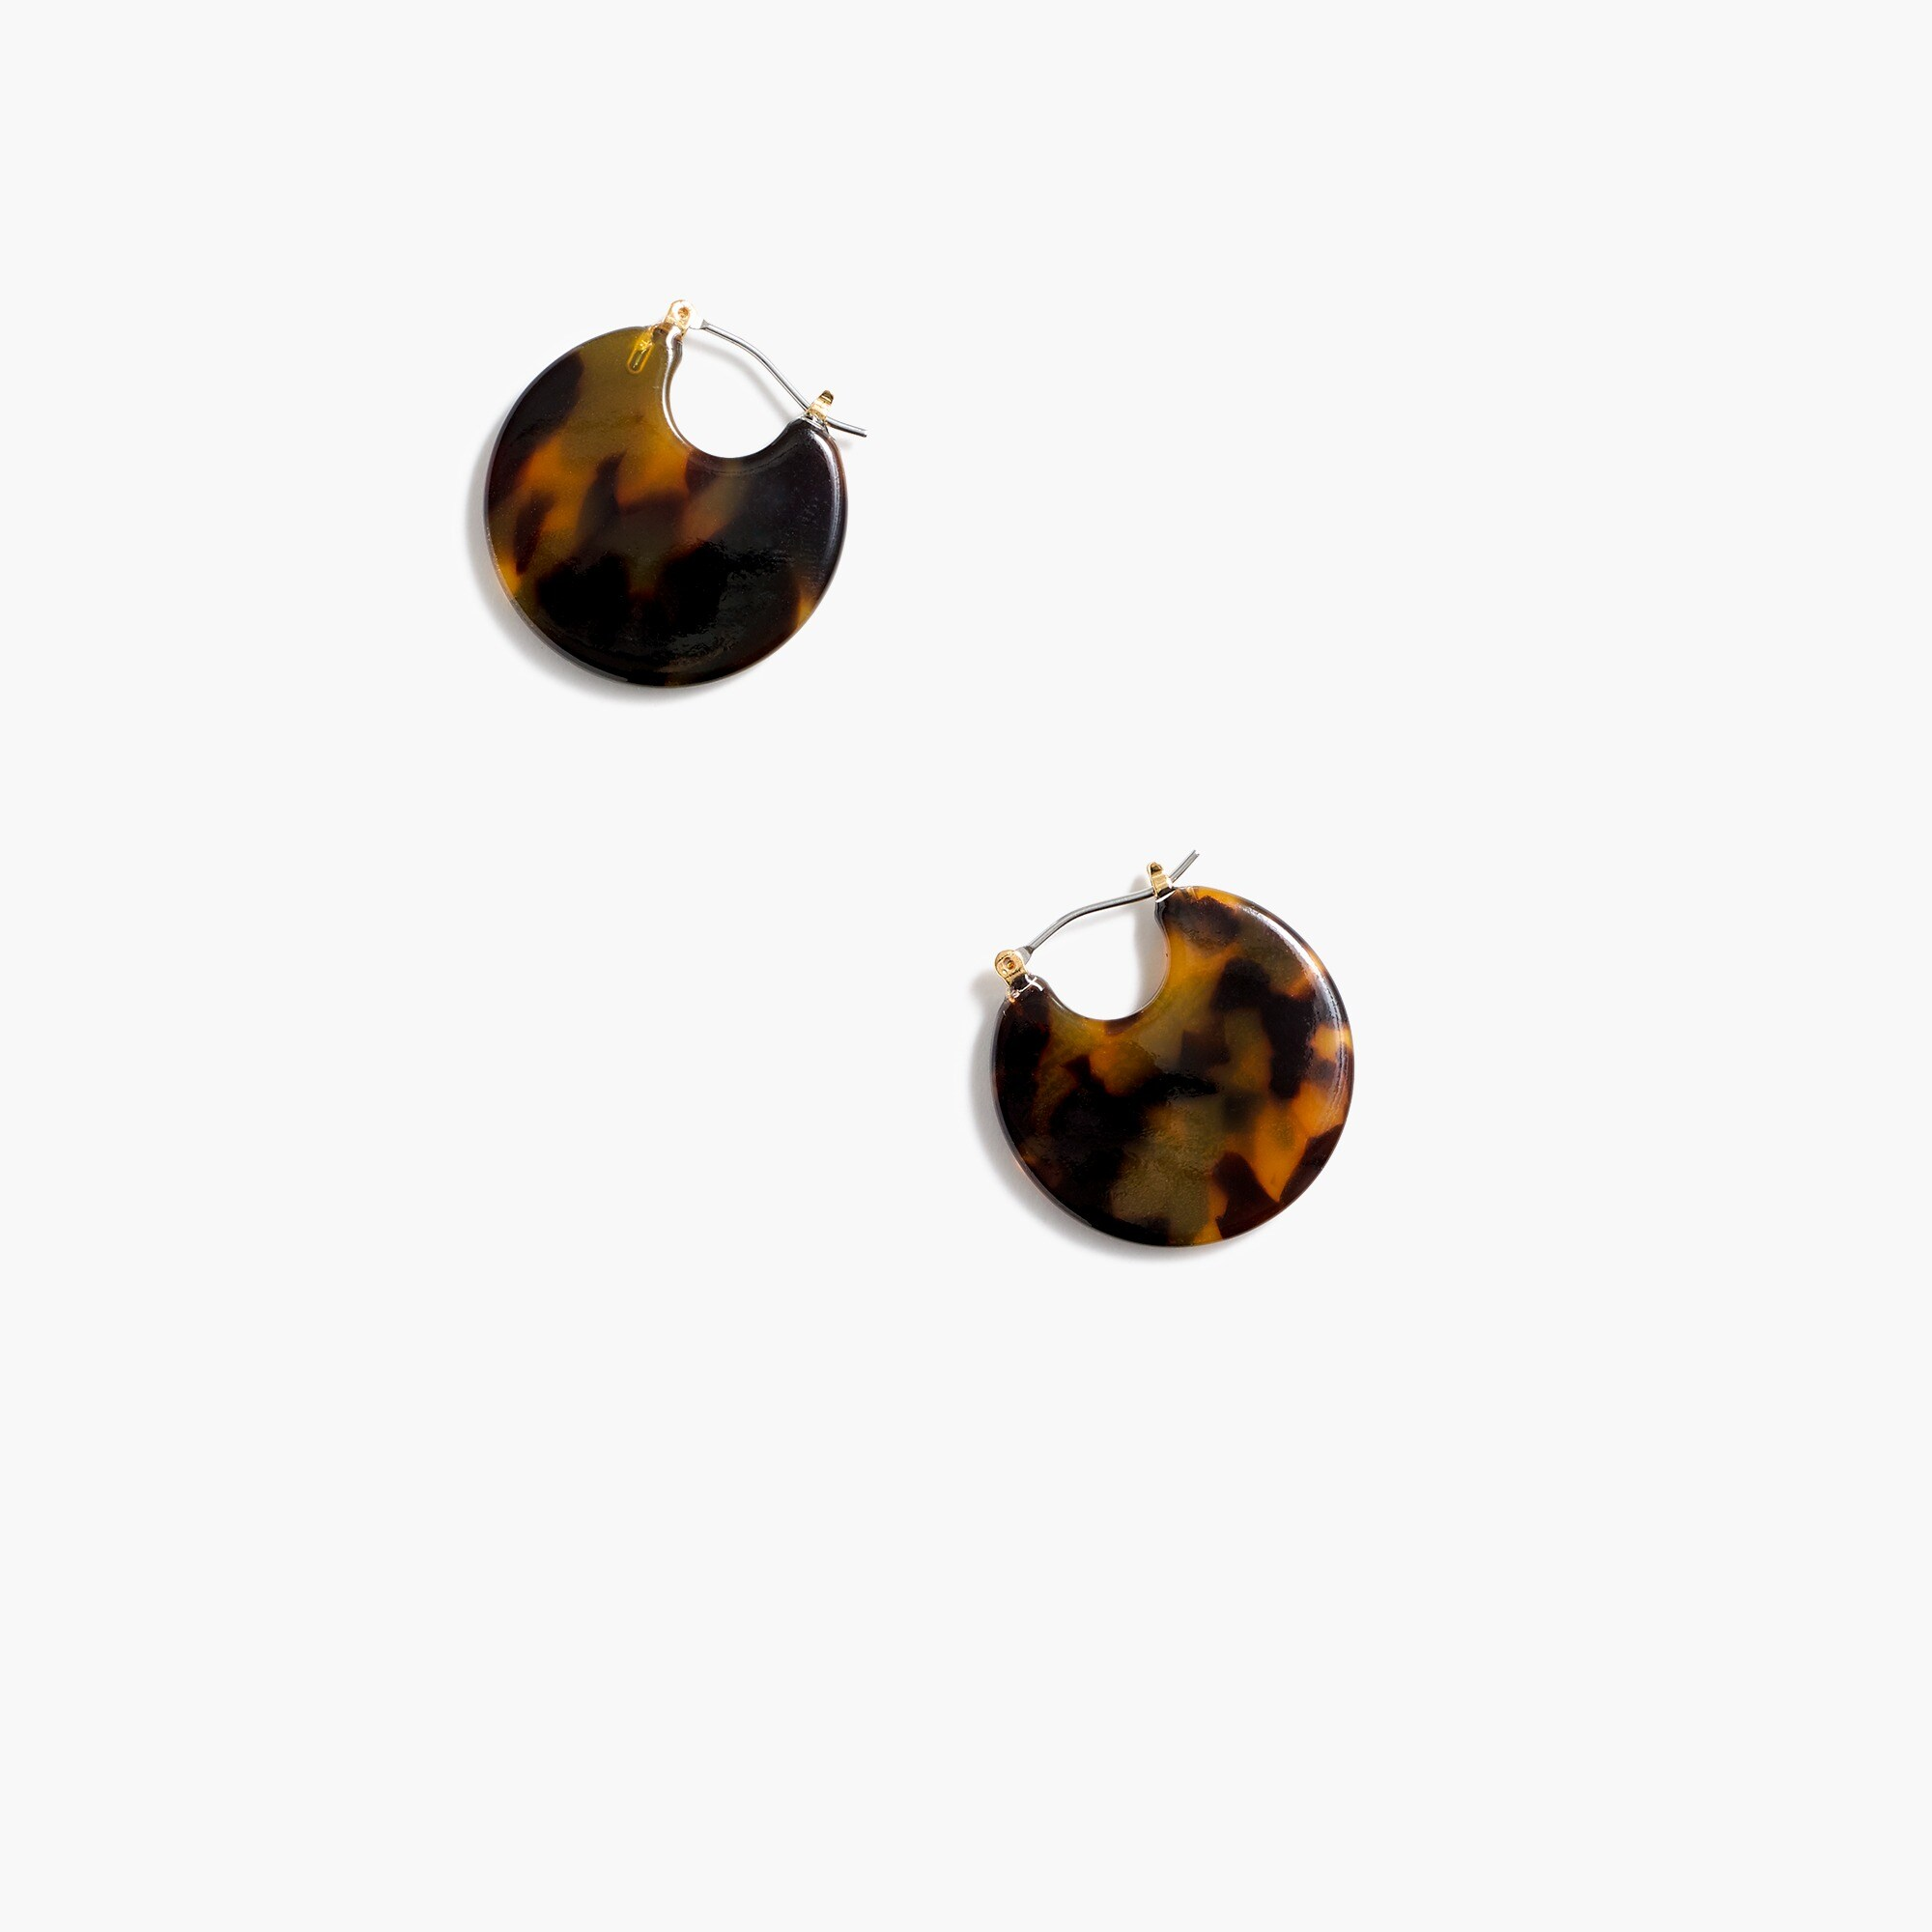 round disk tortoise earrings : women earrings